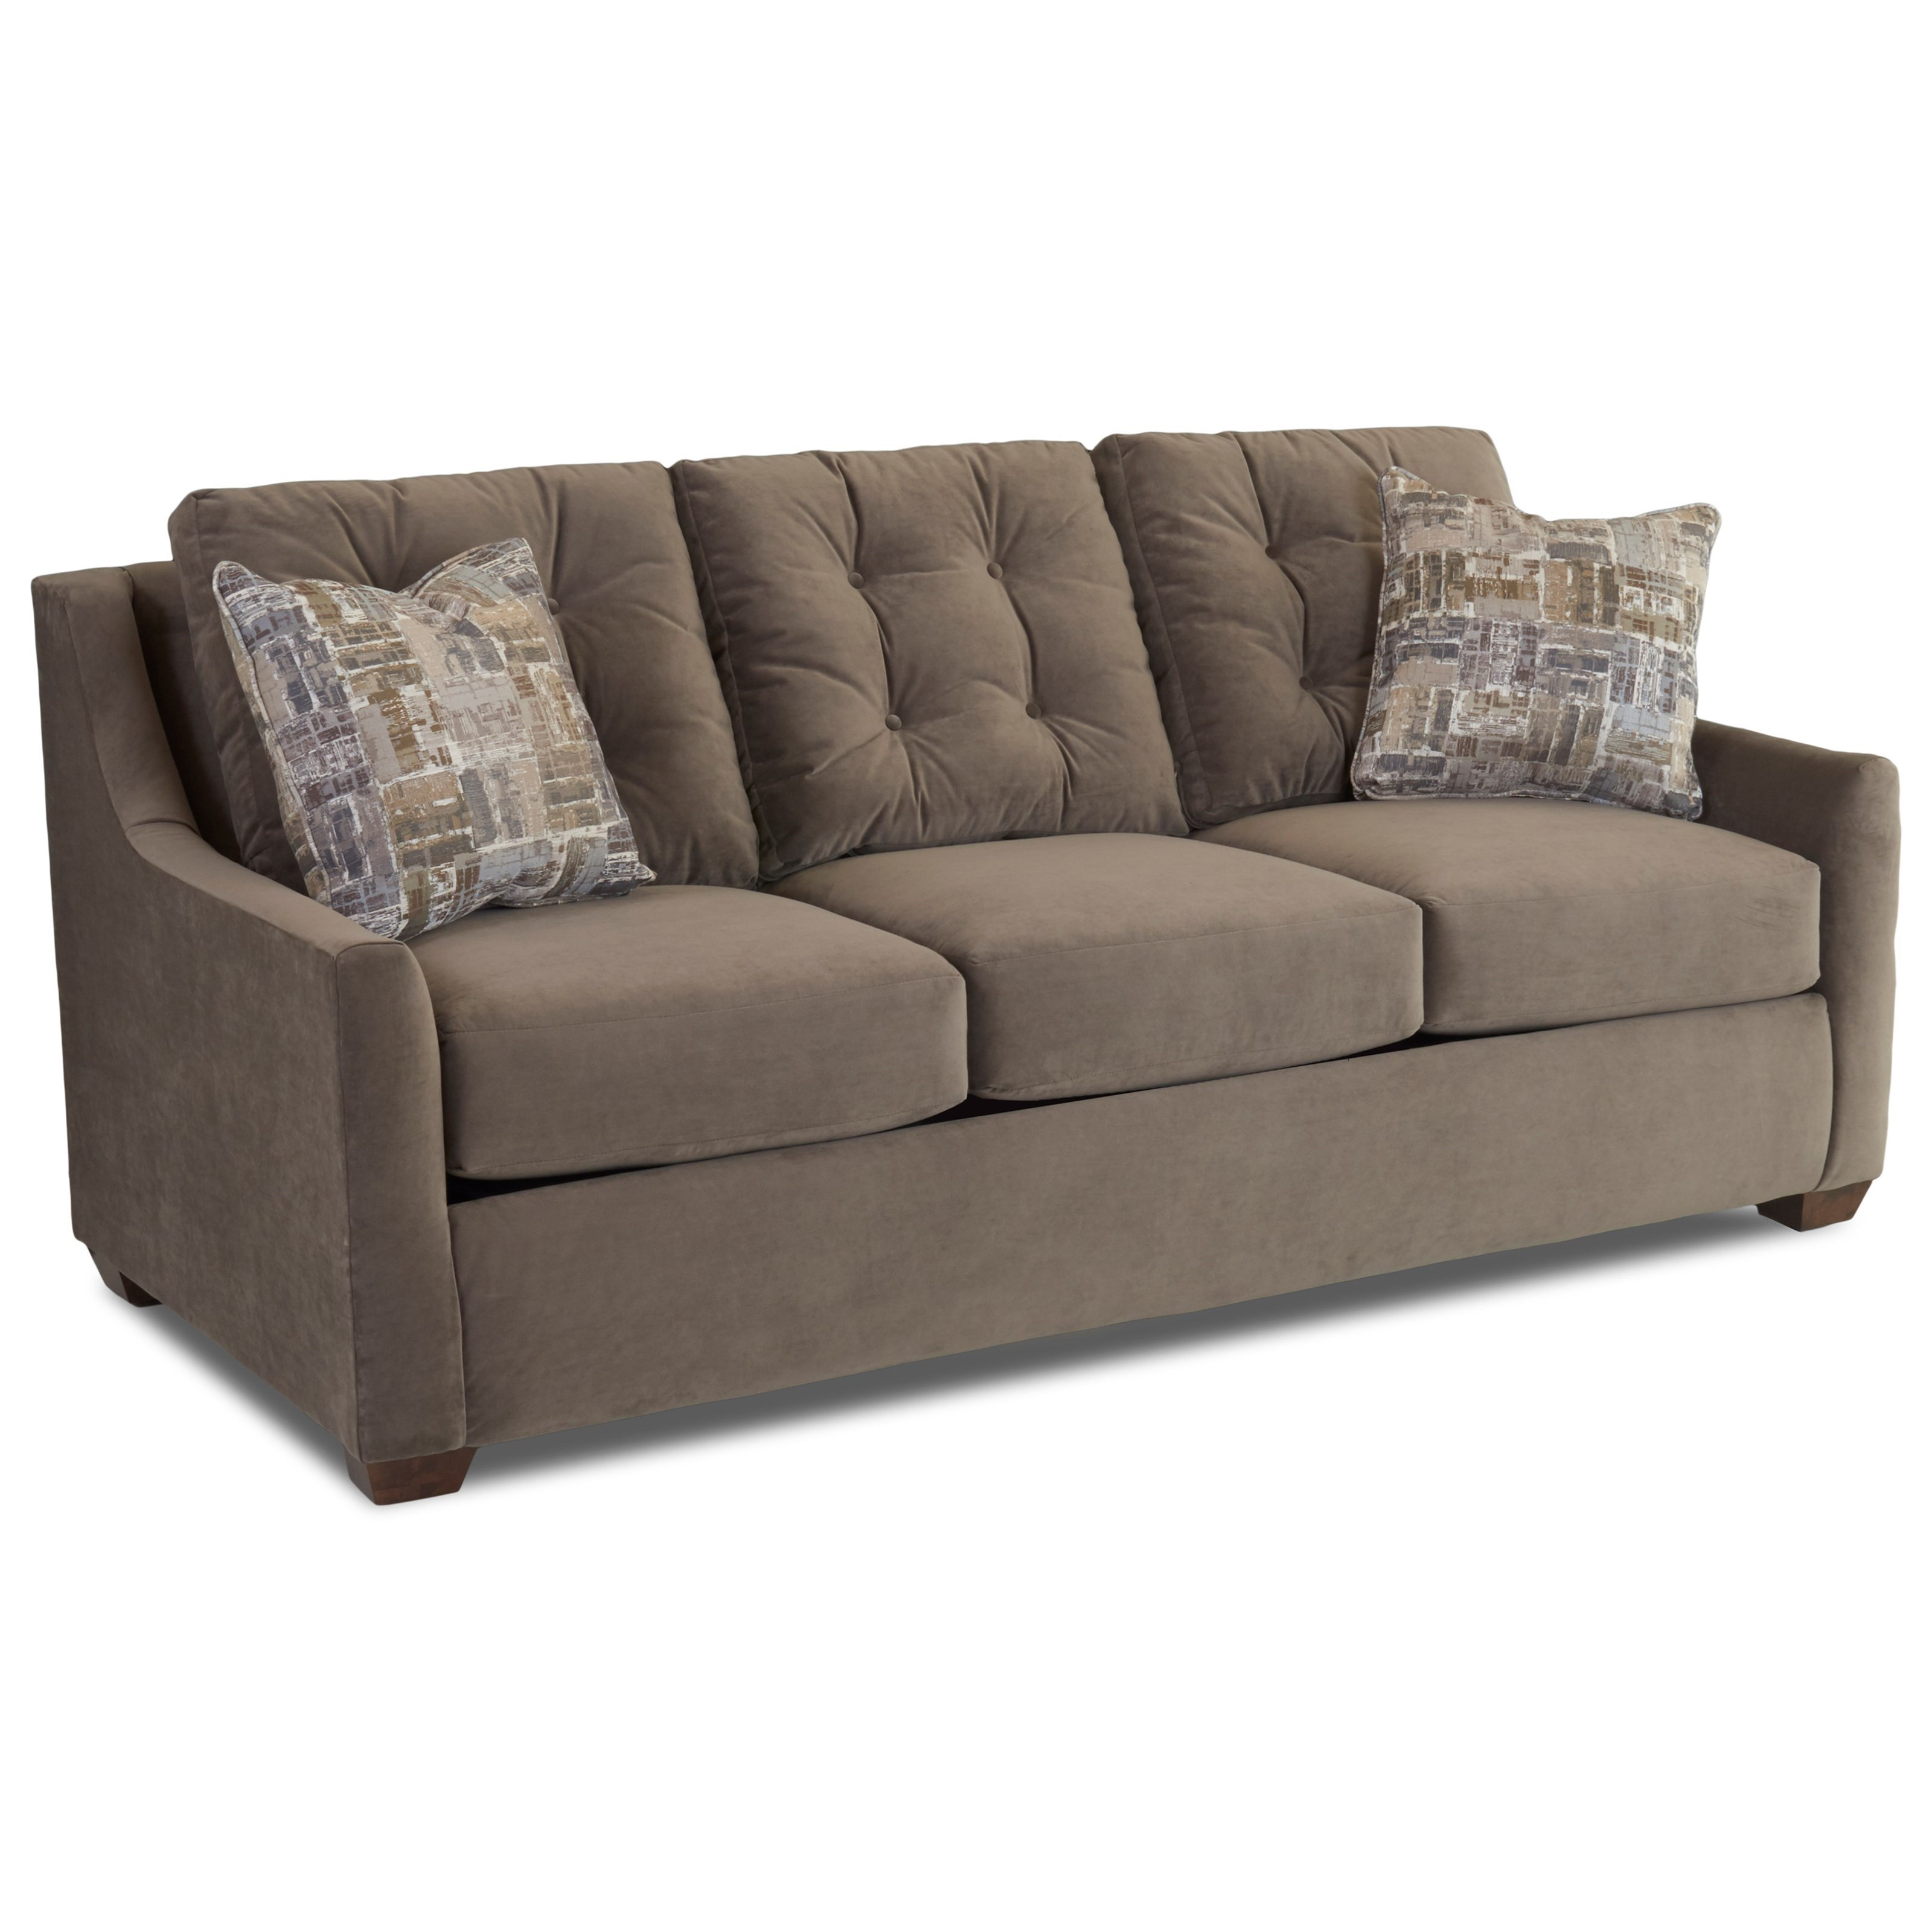 Klaussner Grayton Queen Enso Memory Foam Sleeper Sofa With